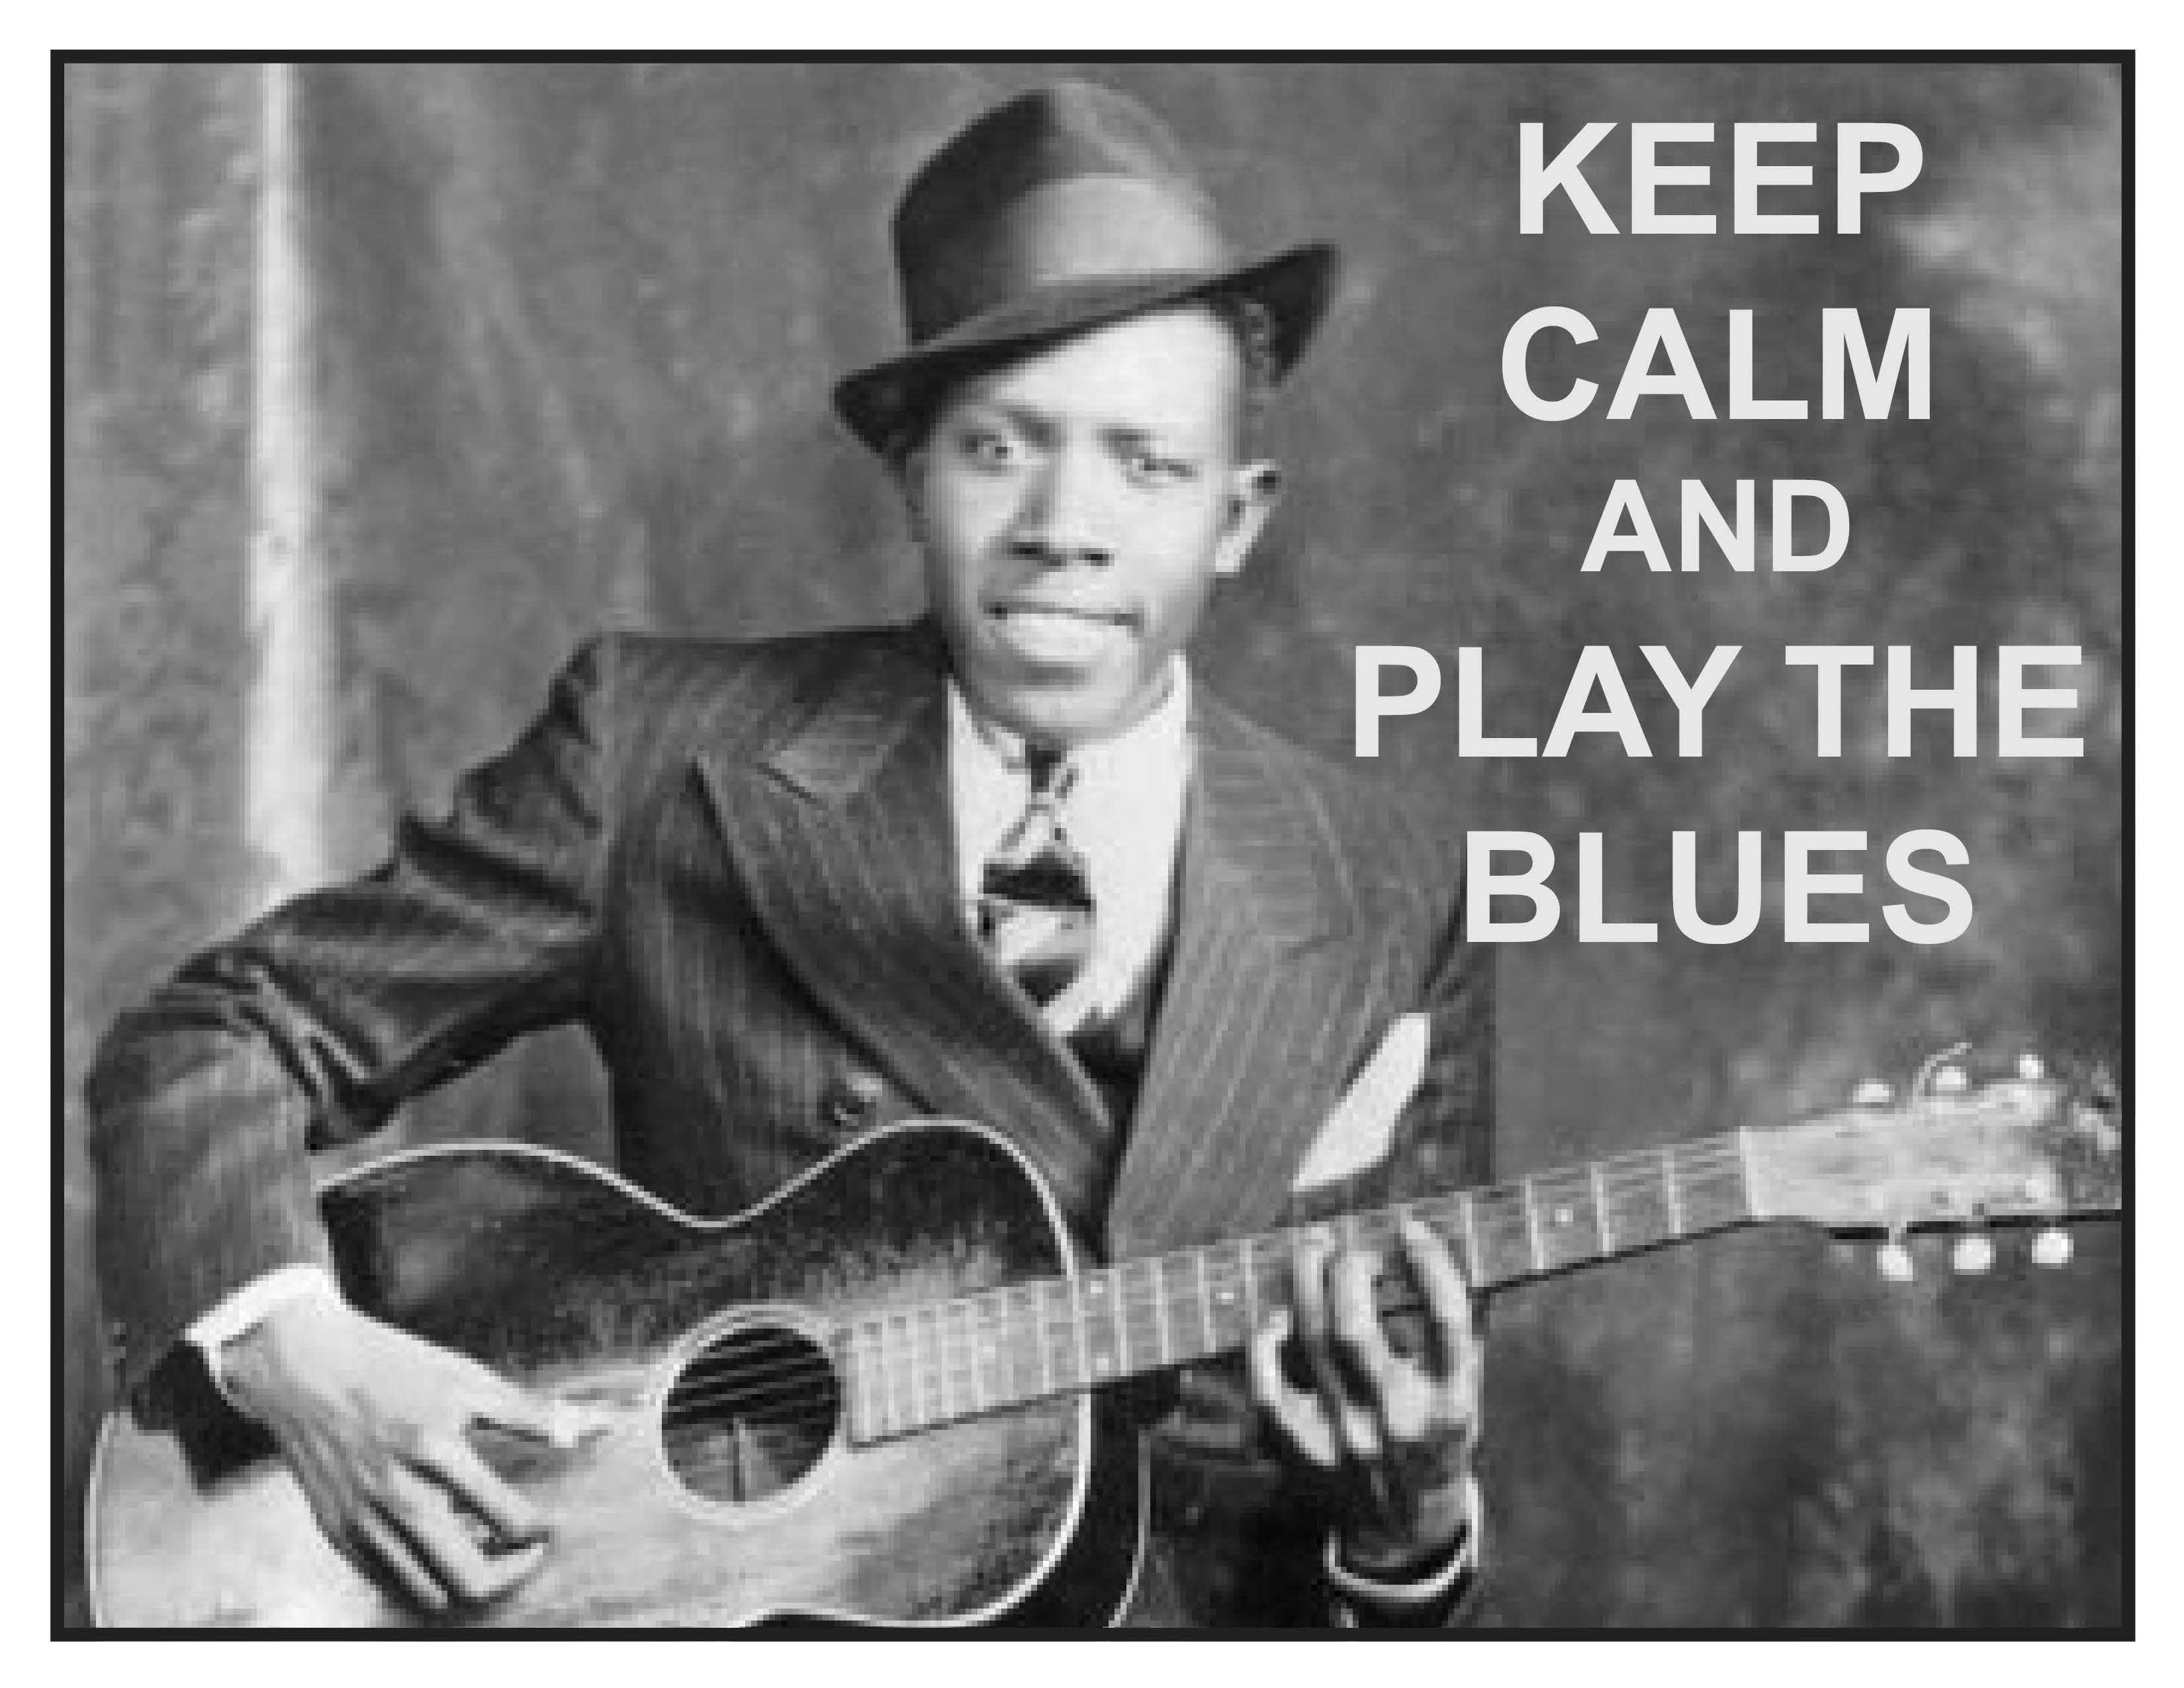 Keep Calm and Play the Blues - Robert Johnson